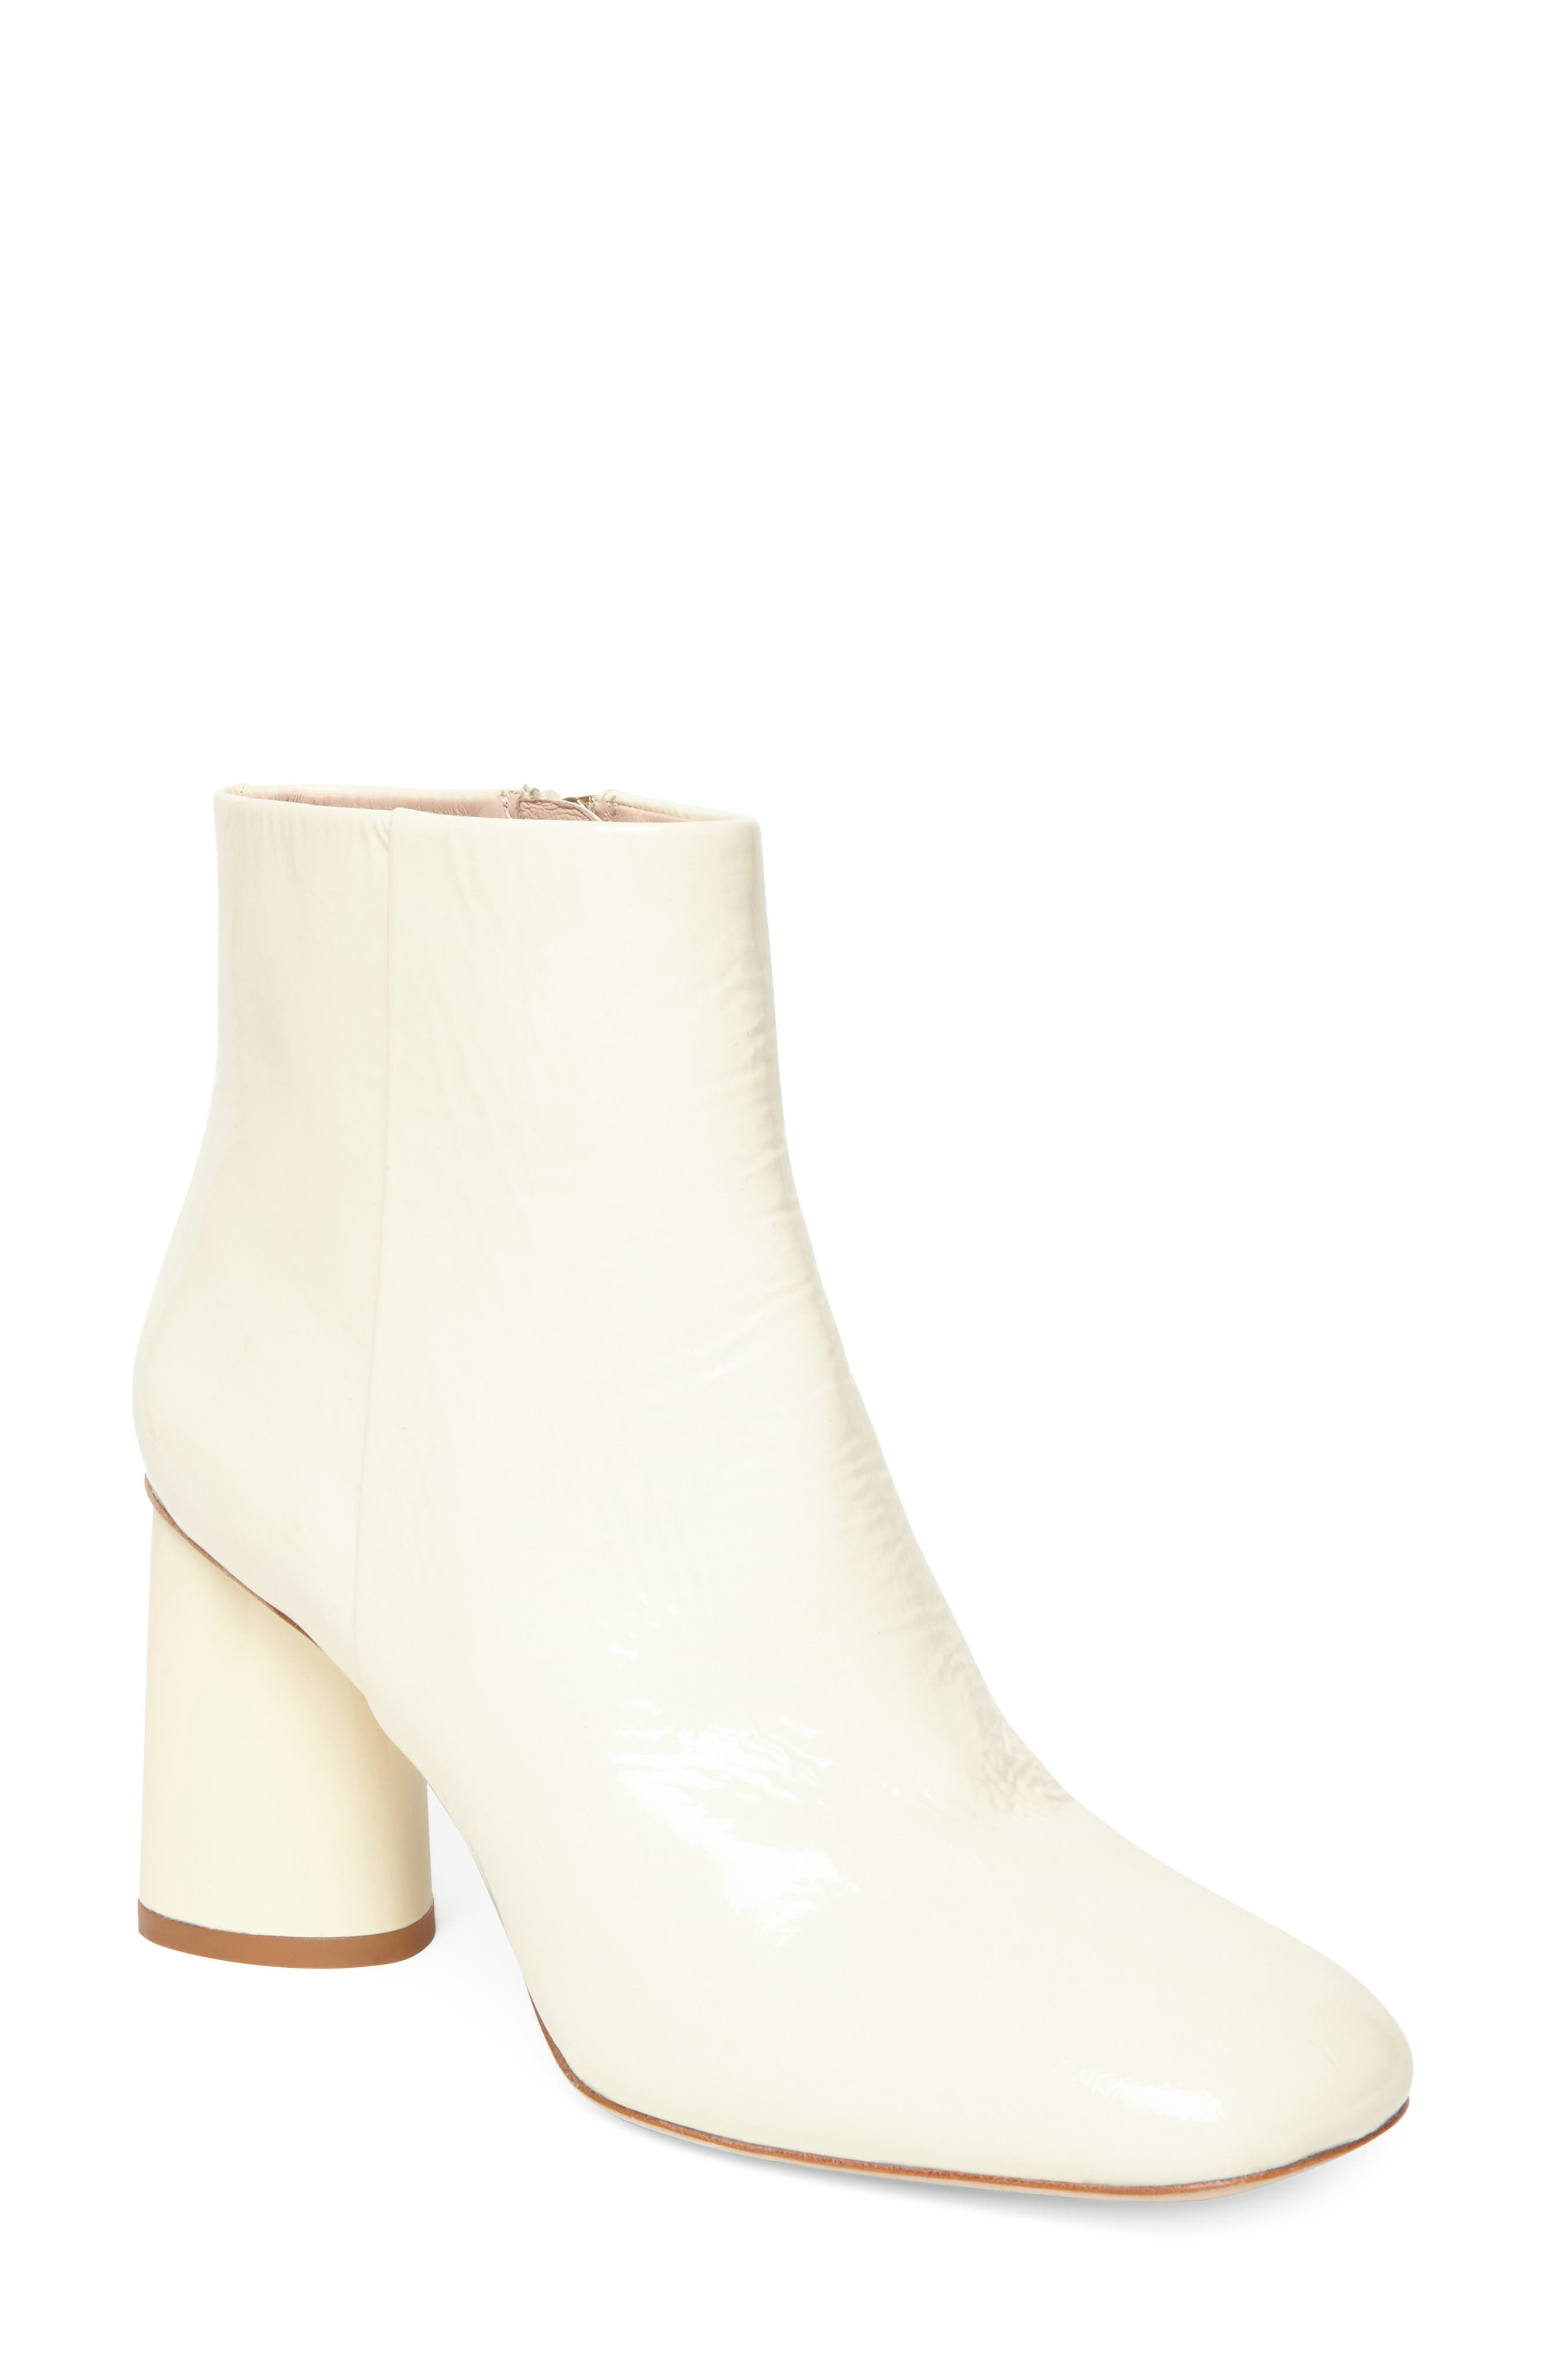 Kate Spade New York Rudy Bootie- Ivory